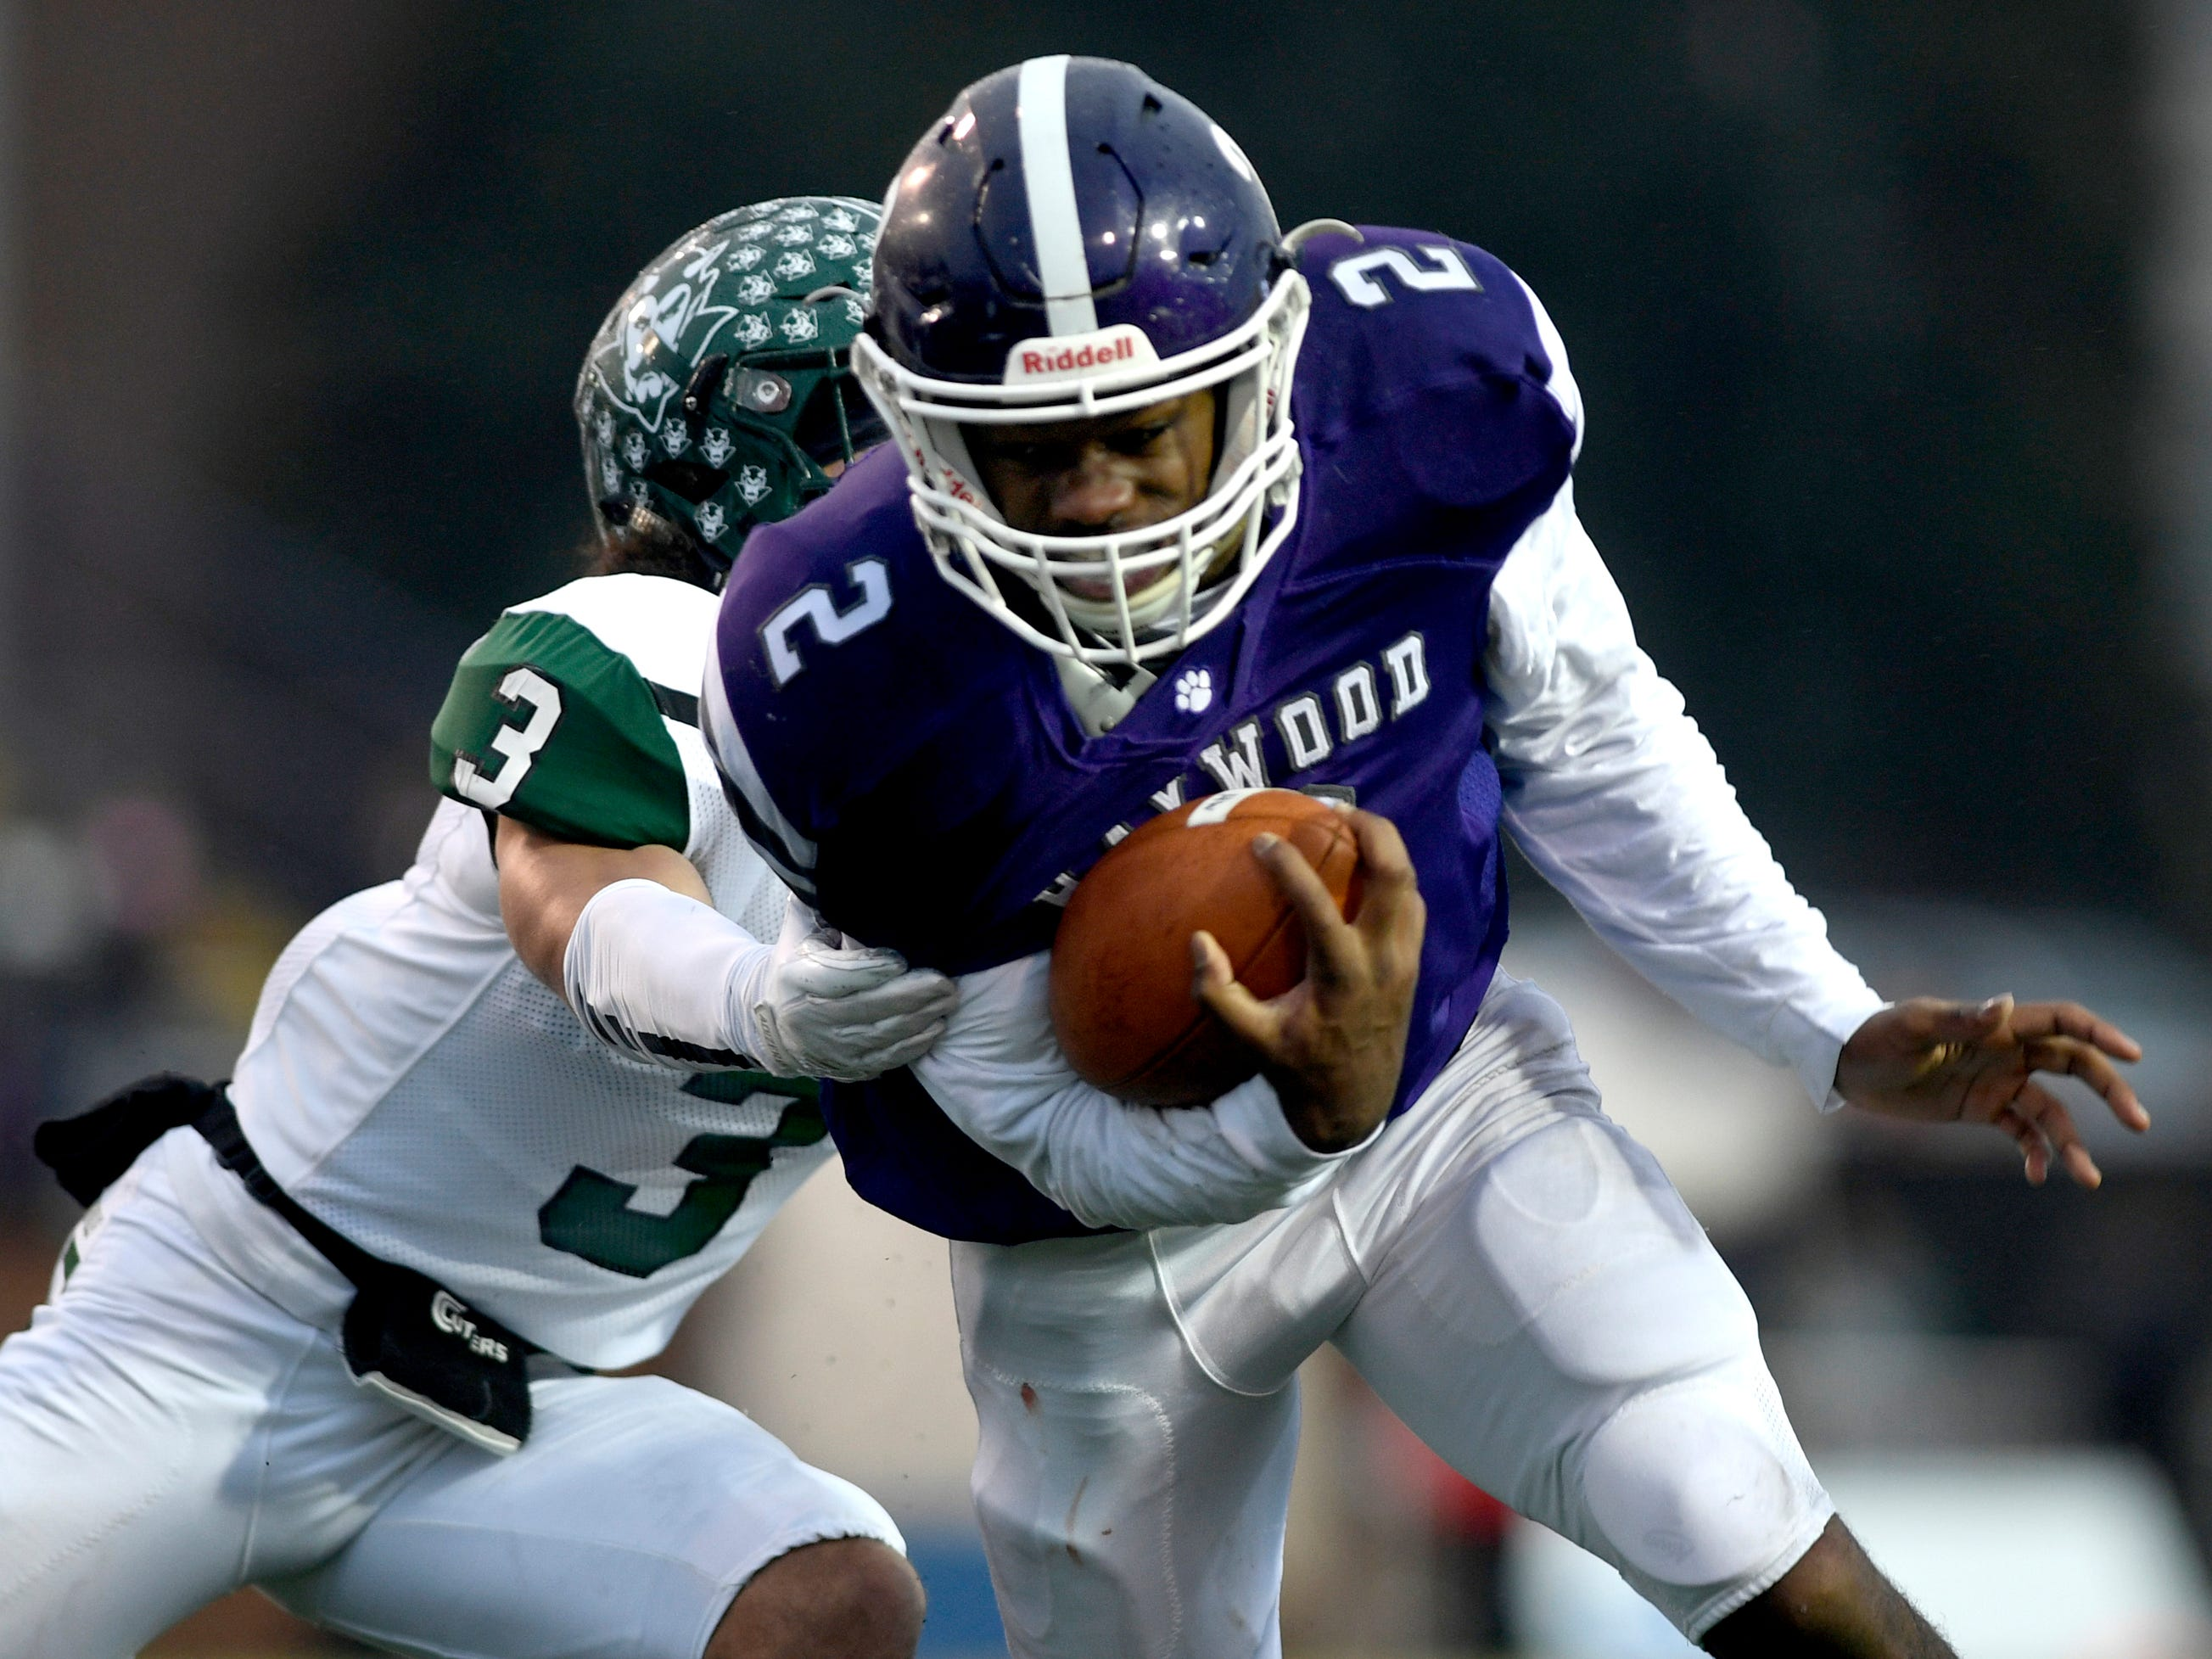 Haywood's  Deyondrius Hines (2) runs the ball as Greeneville's Jordan Gillespie (3) moves in for a tackle during the Class 4A BlueCross Bowl state championship Thursday, Nov. 29, 2018, at Tennessee Tech's Tucker Stadium in Cookeville, Tenn.